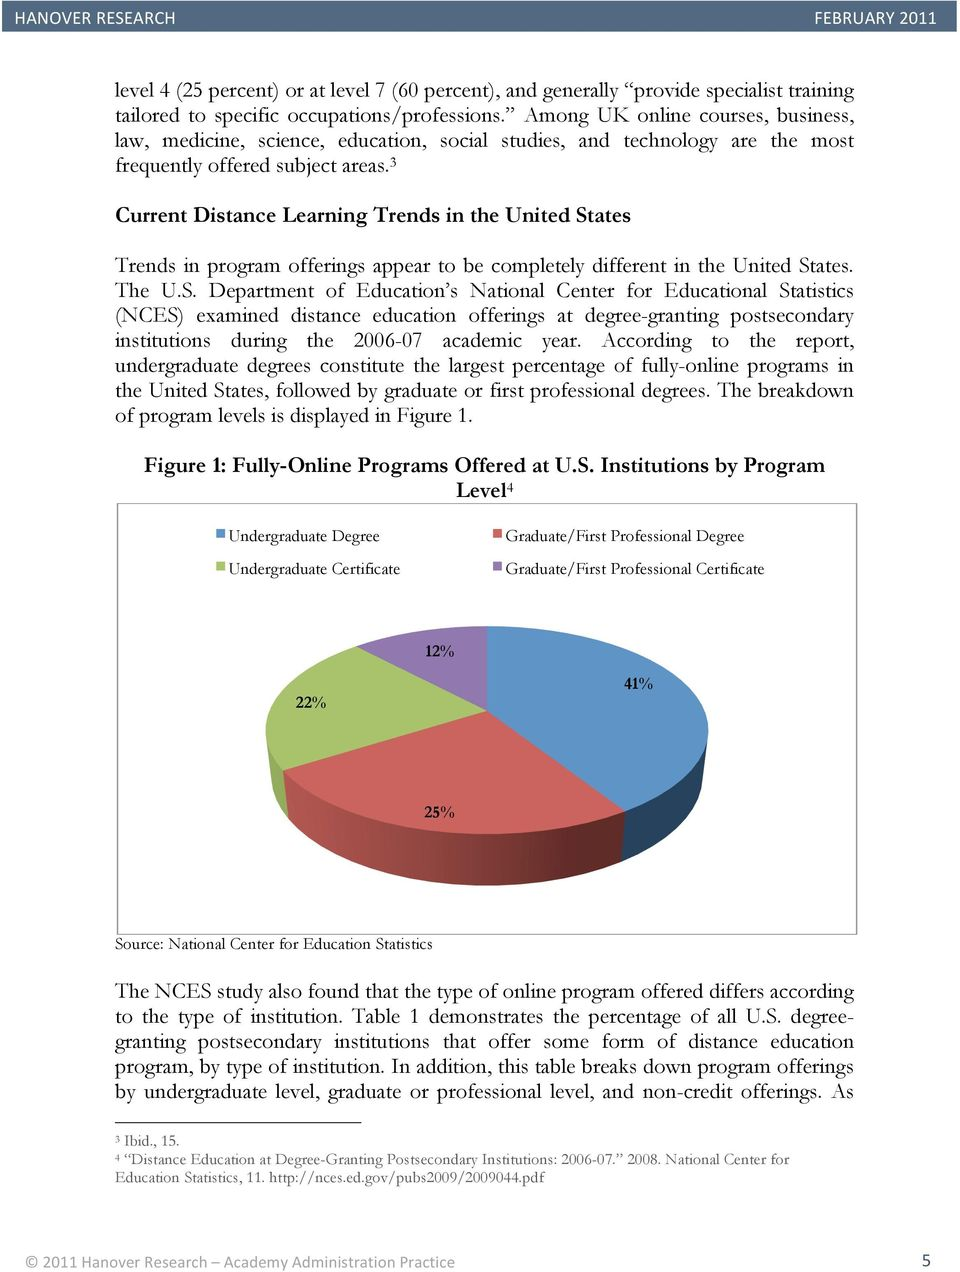 3 Current Distance Learning Trends in the United St